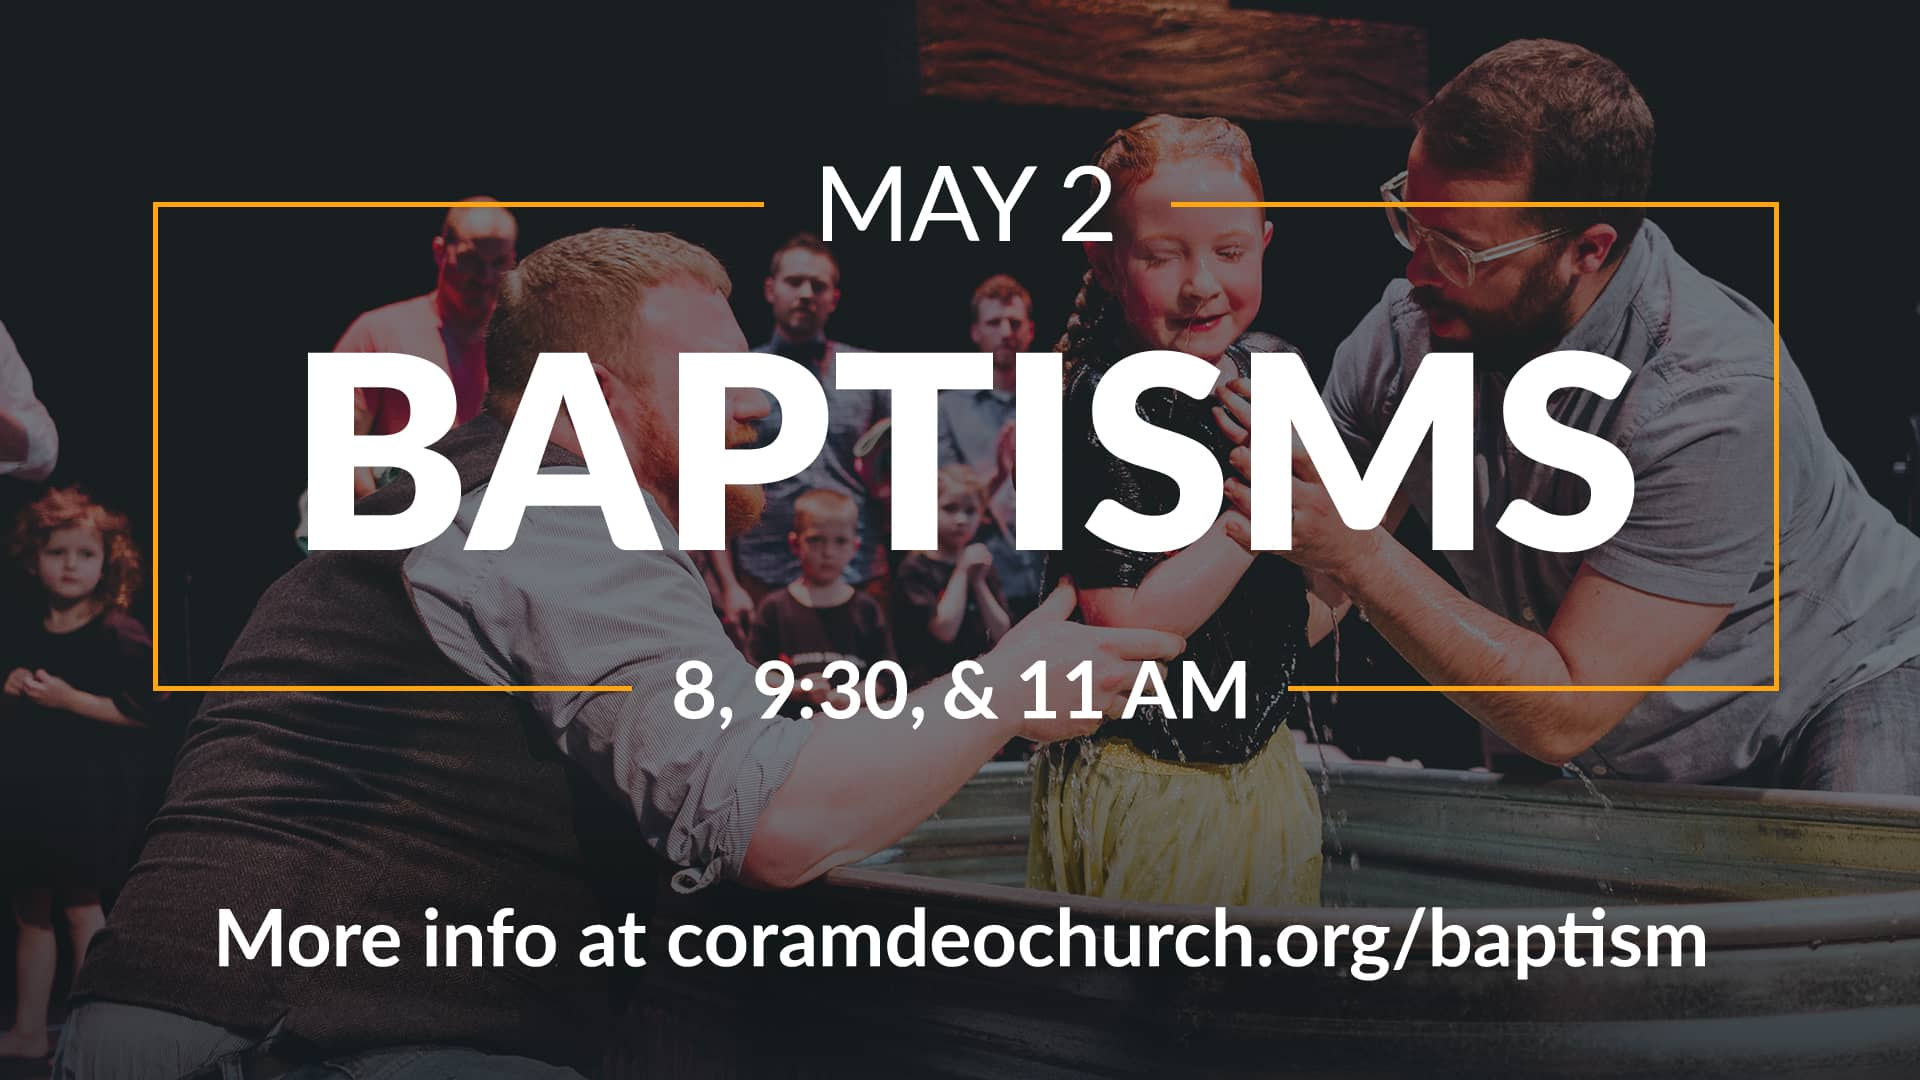 Get Baptized on May 2